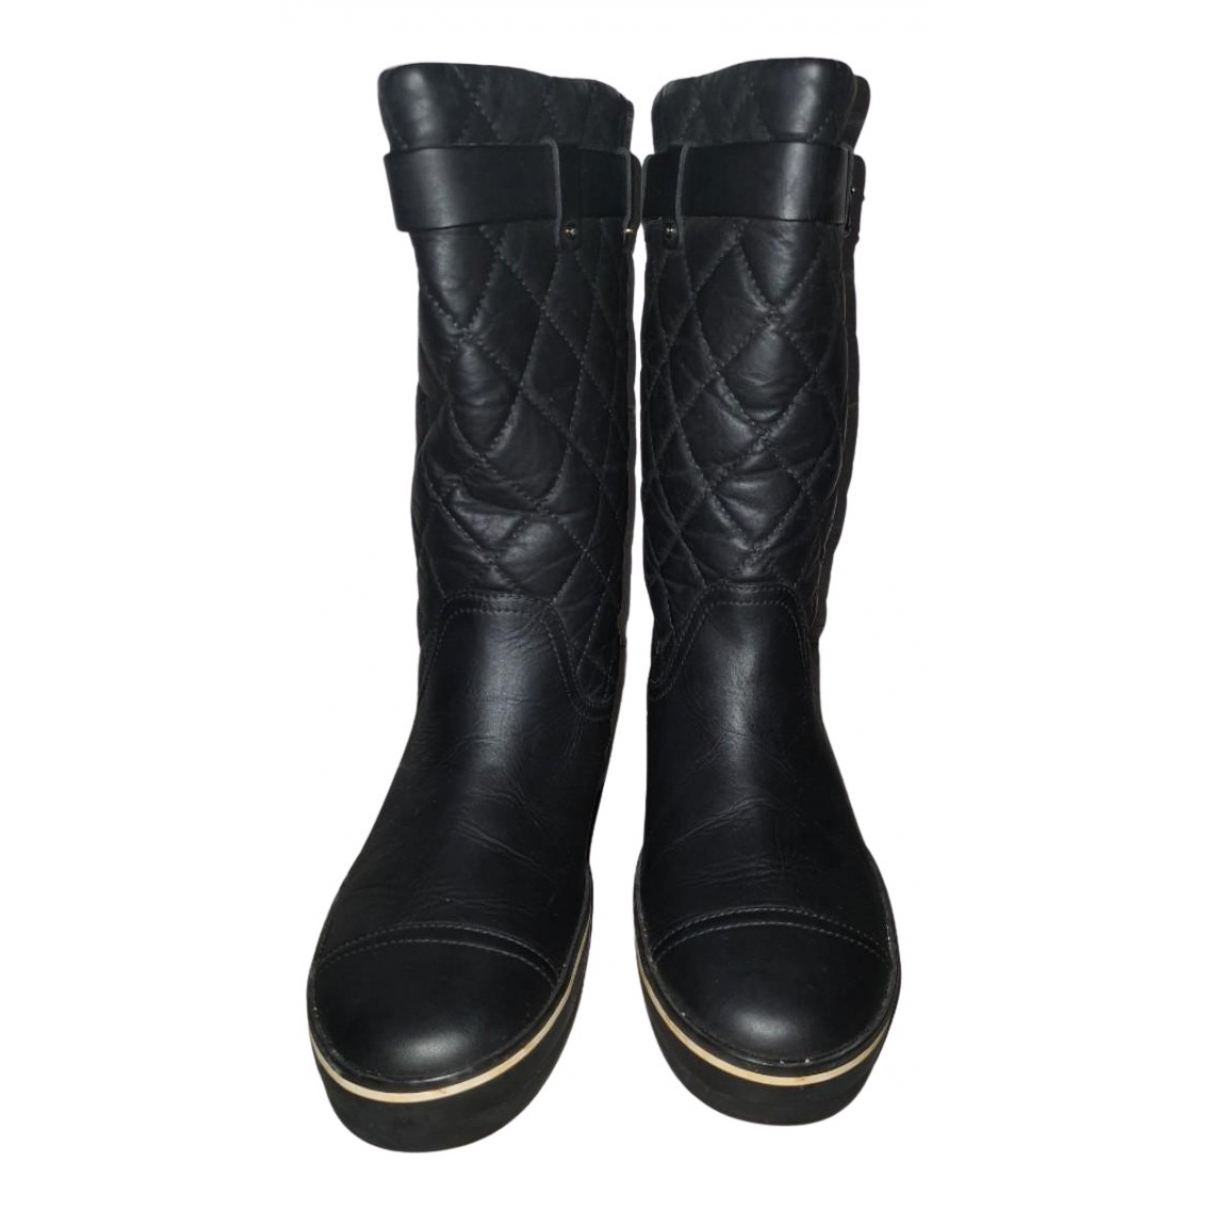 Chanel N Black Leather Boots for Women 36.5 EU